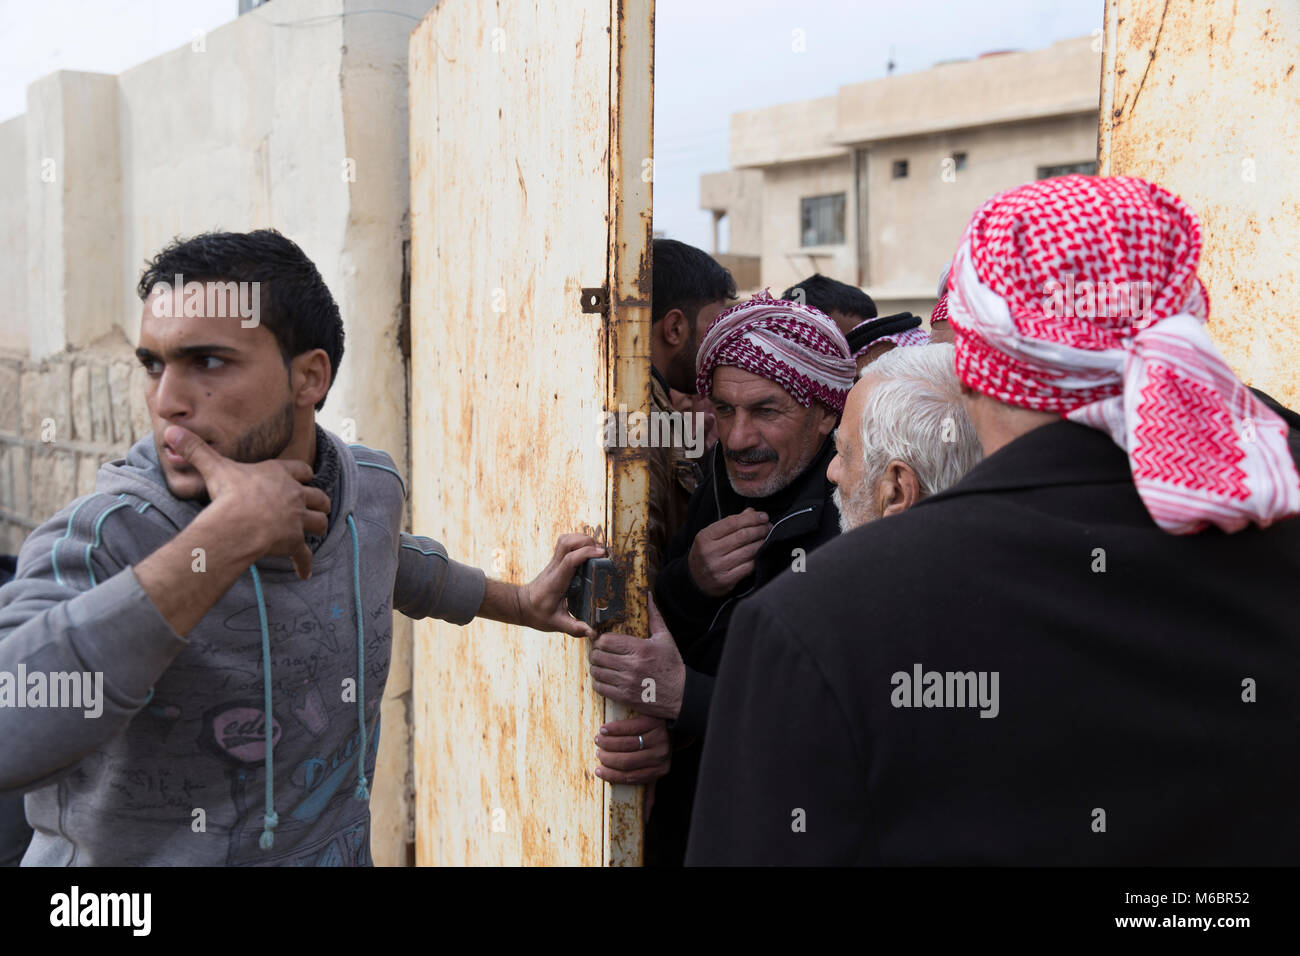 Mosul, Iraq. 8th December 2016 - Mosul locals try to convince their way into a barricaded school to seek shelter as fighting continues in the city of M Stock Photo